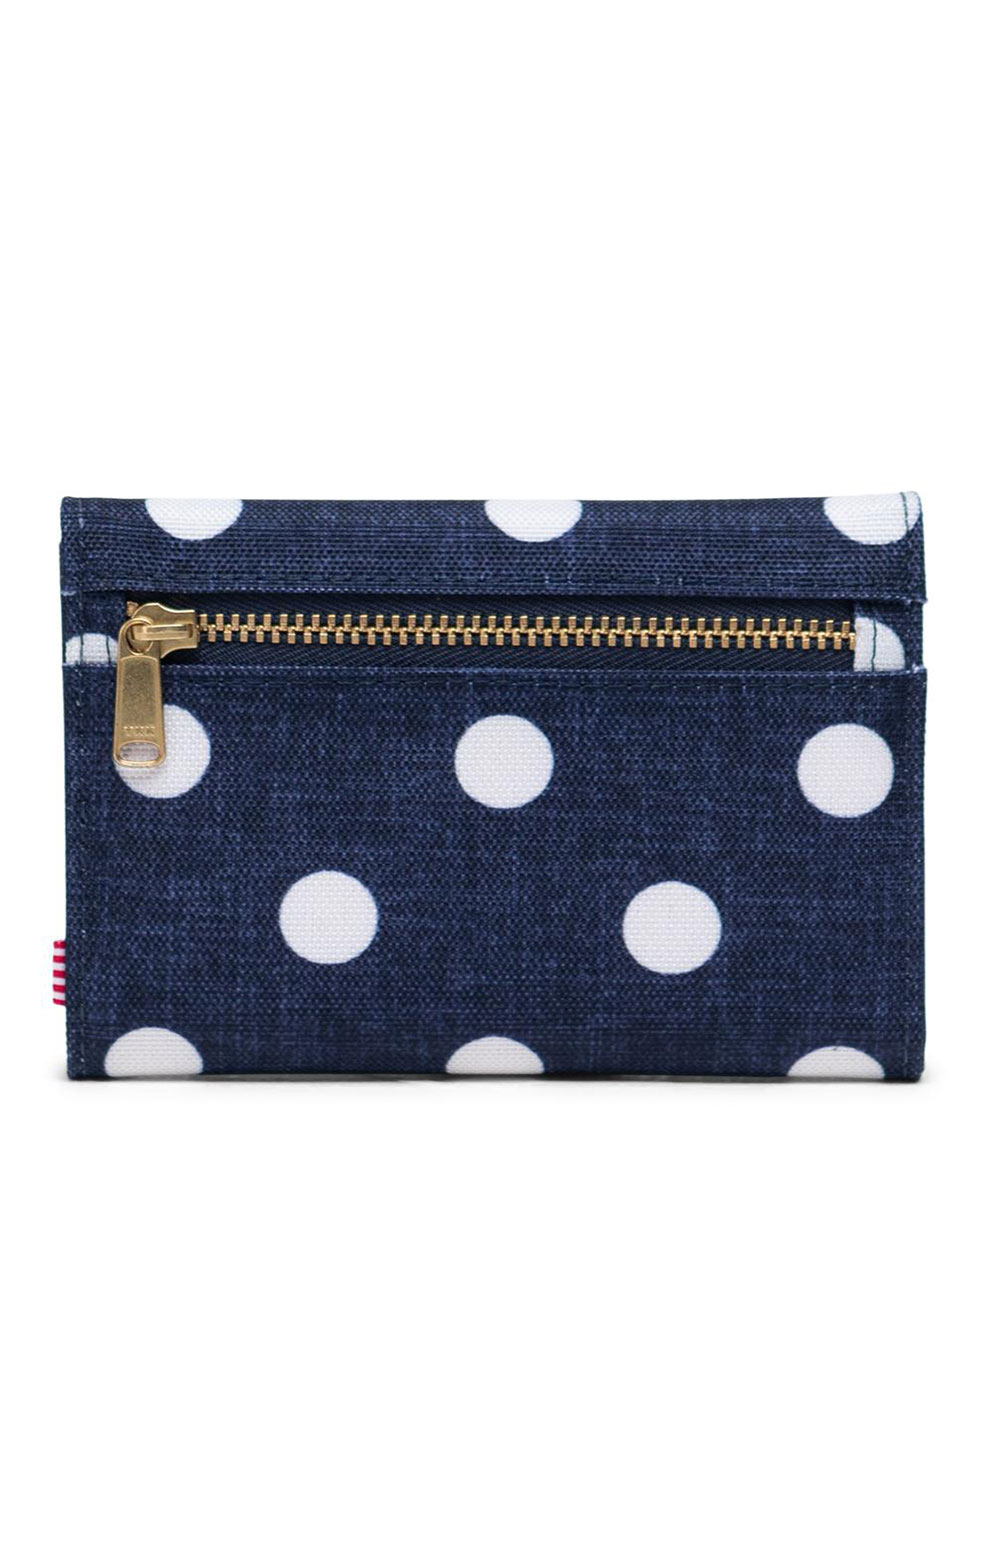 Orion Wallet - Polka Dot Crosshatch/Peacoat Small/Tropical Hibiscus 3